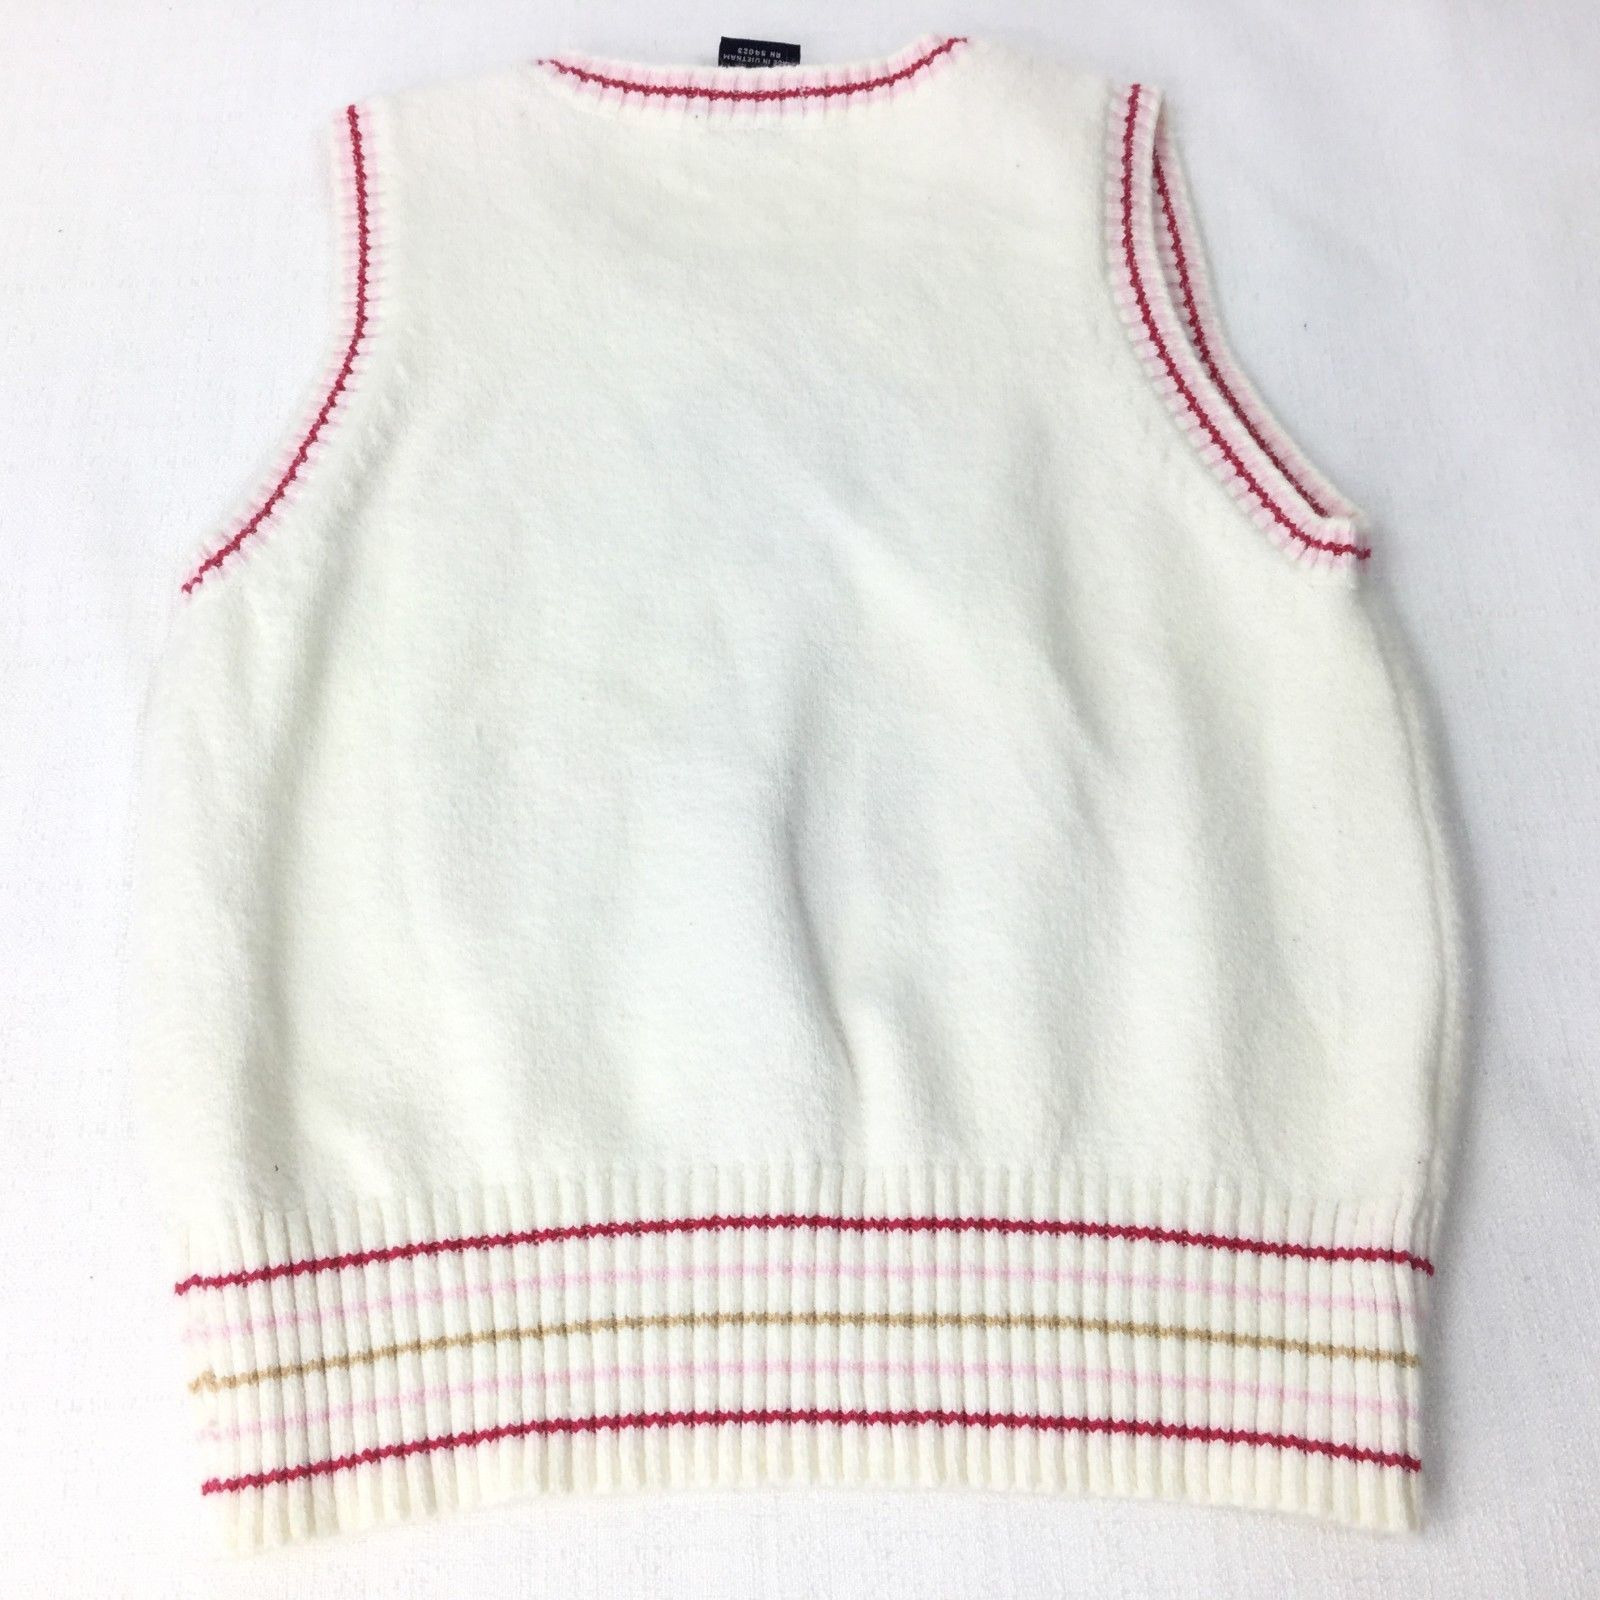 Gap Girl Size Medium Vest White/Pink/Red (7-8) Argyle/Diamond